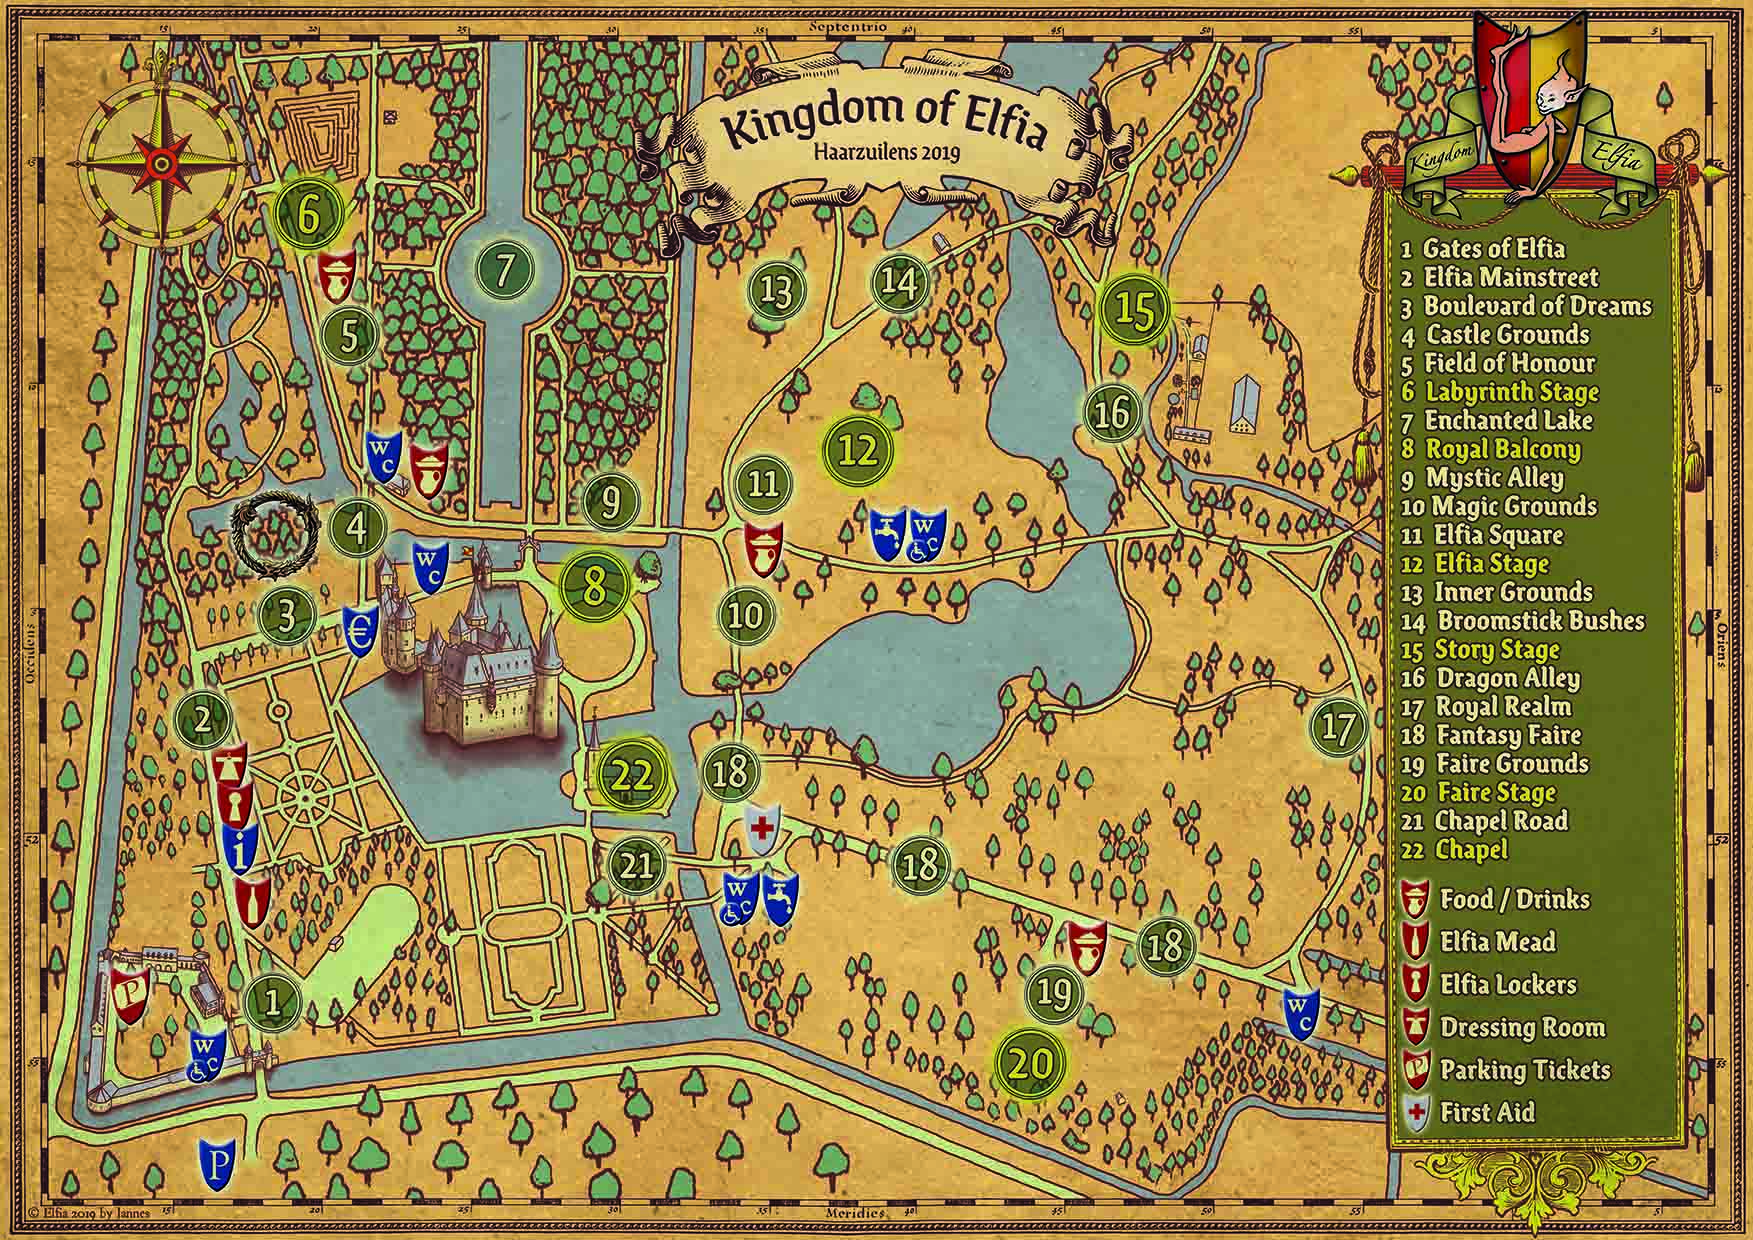 map_elfia_kdh_2019.jpg